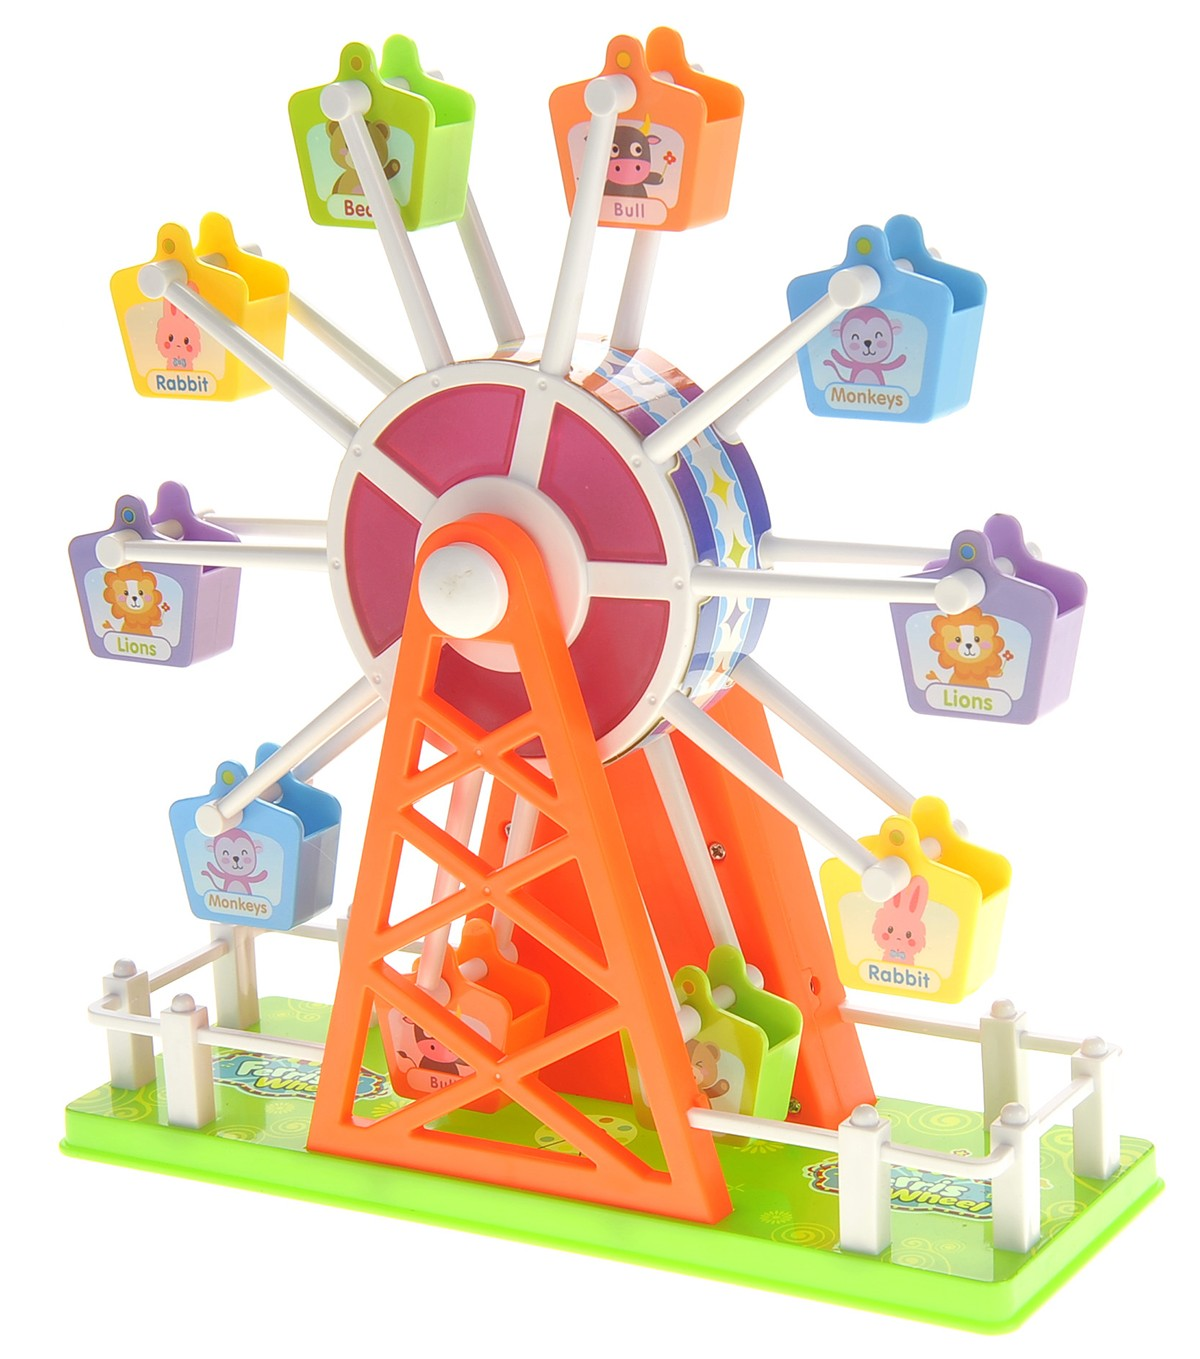 Merry Go Round Electronic Ferris Wheel Toy with Music and Lights